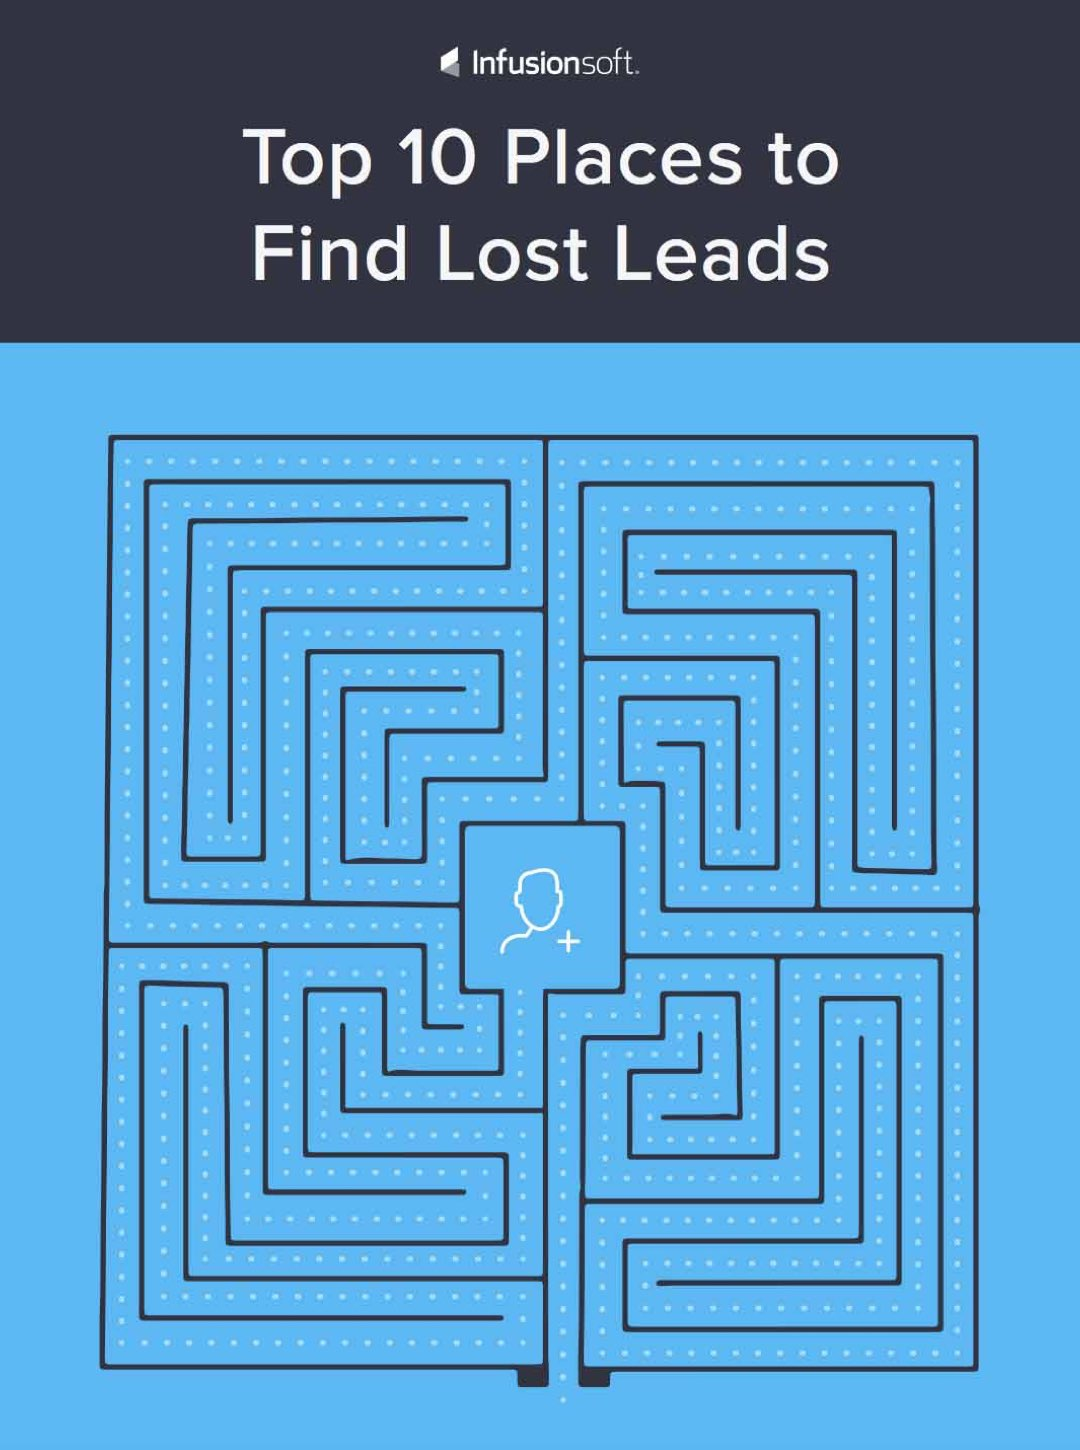 Top 10 Place to Find Lost Leads